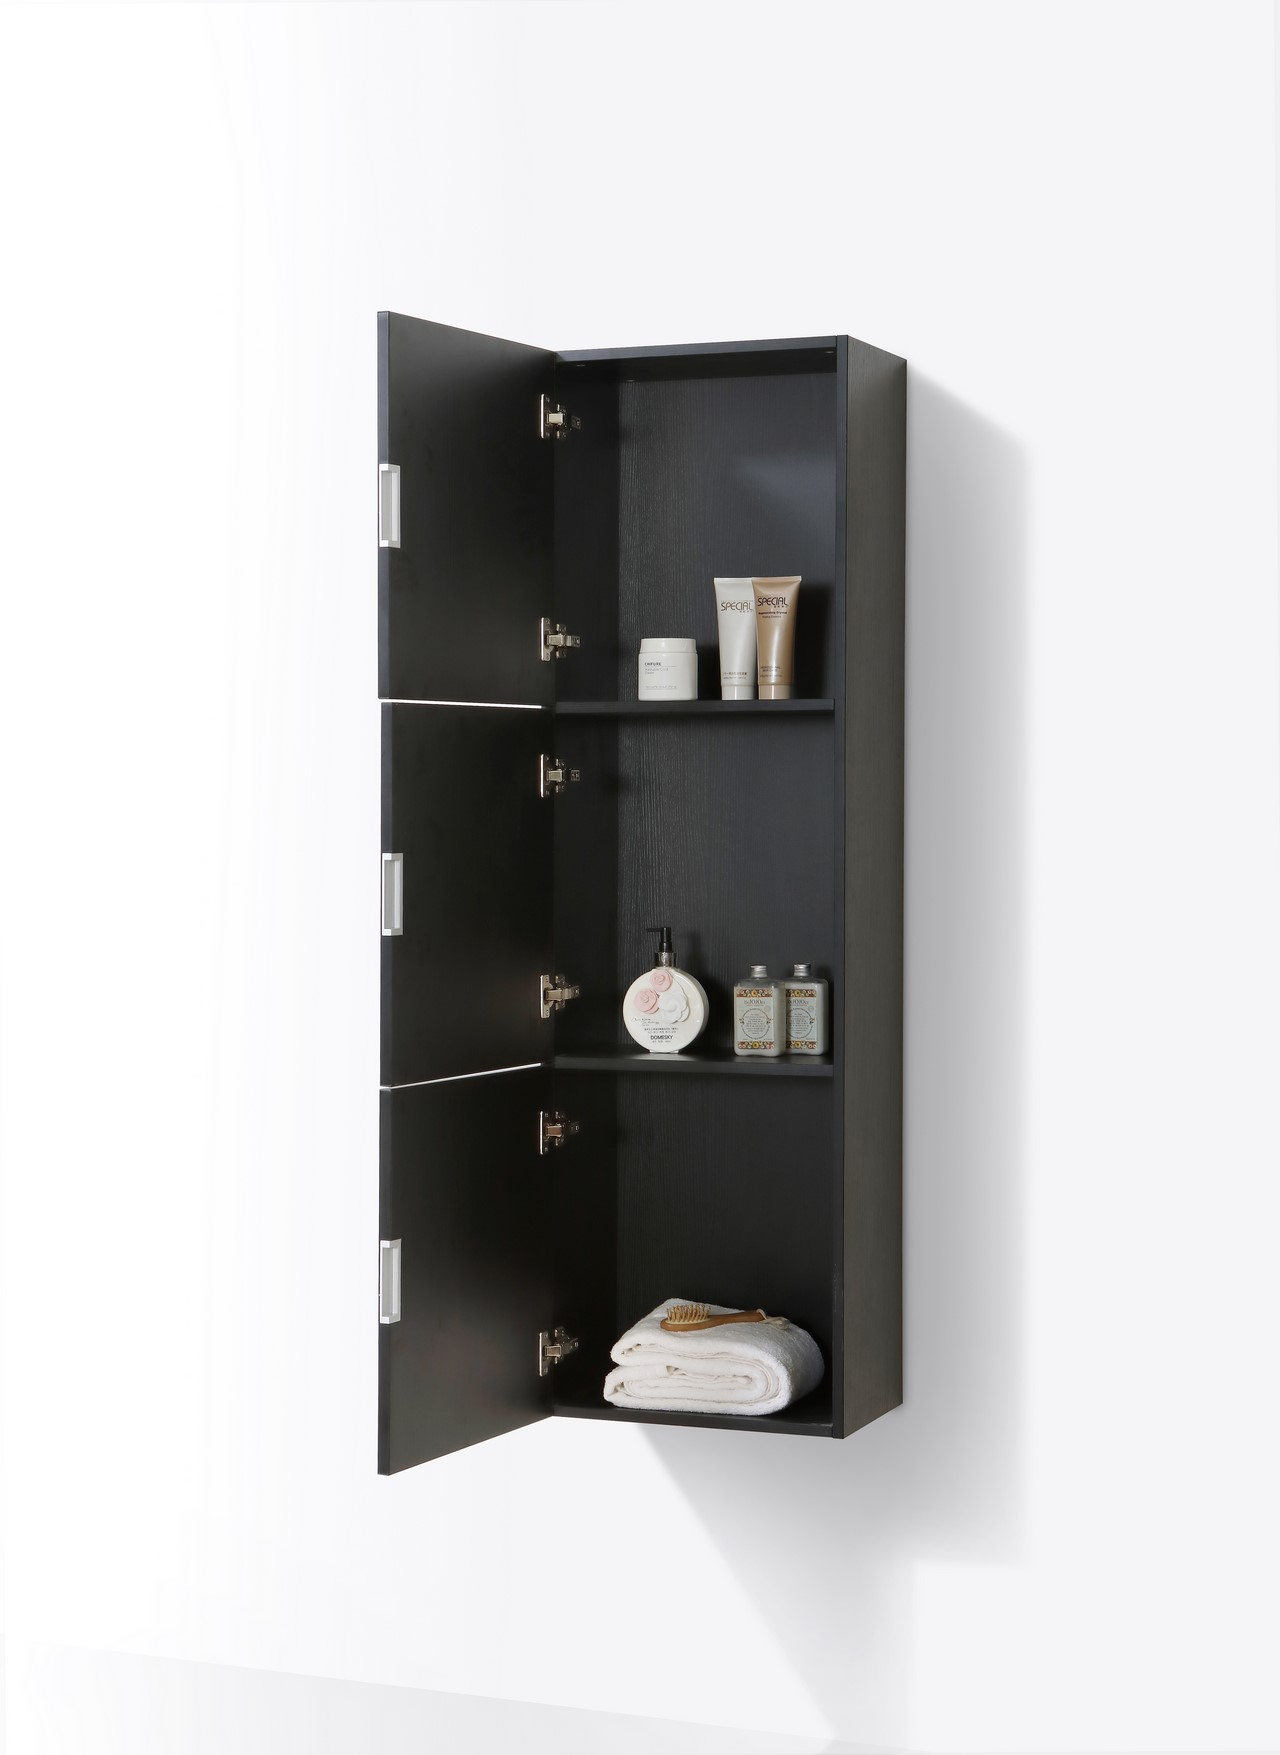 bathroom side cabinets. Bathroom Black Wood Linen Side Cabinet W/ 3 Large Storage Areas Cabinets, Cabinets